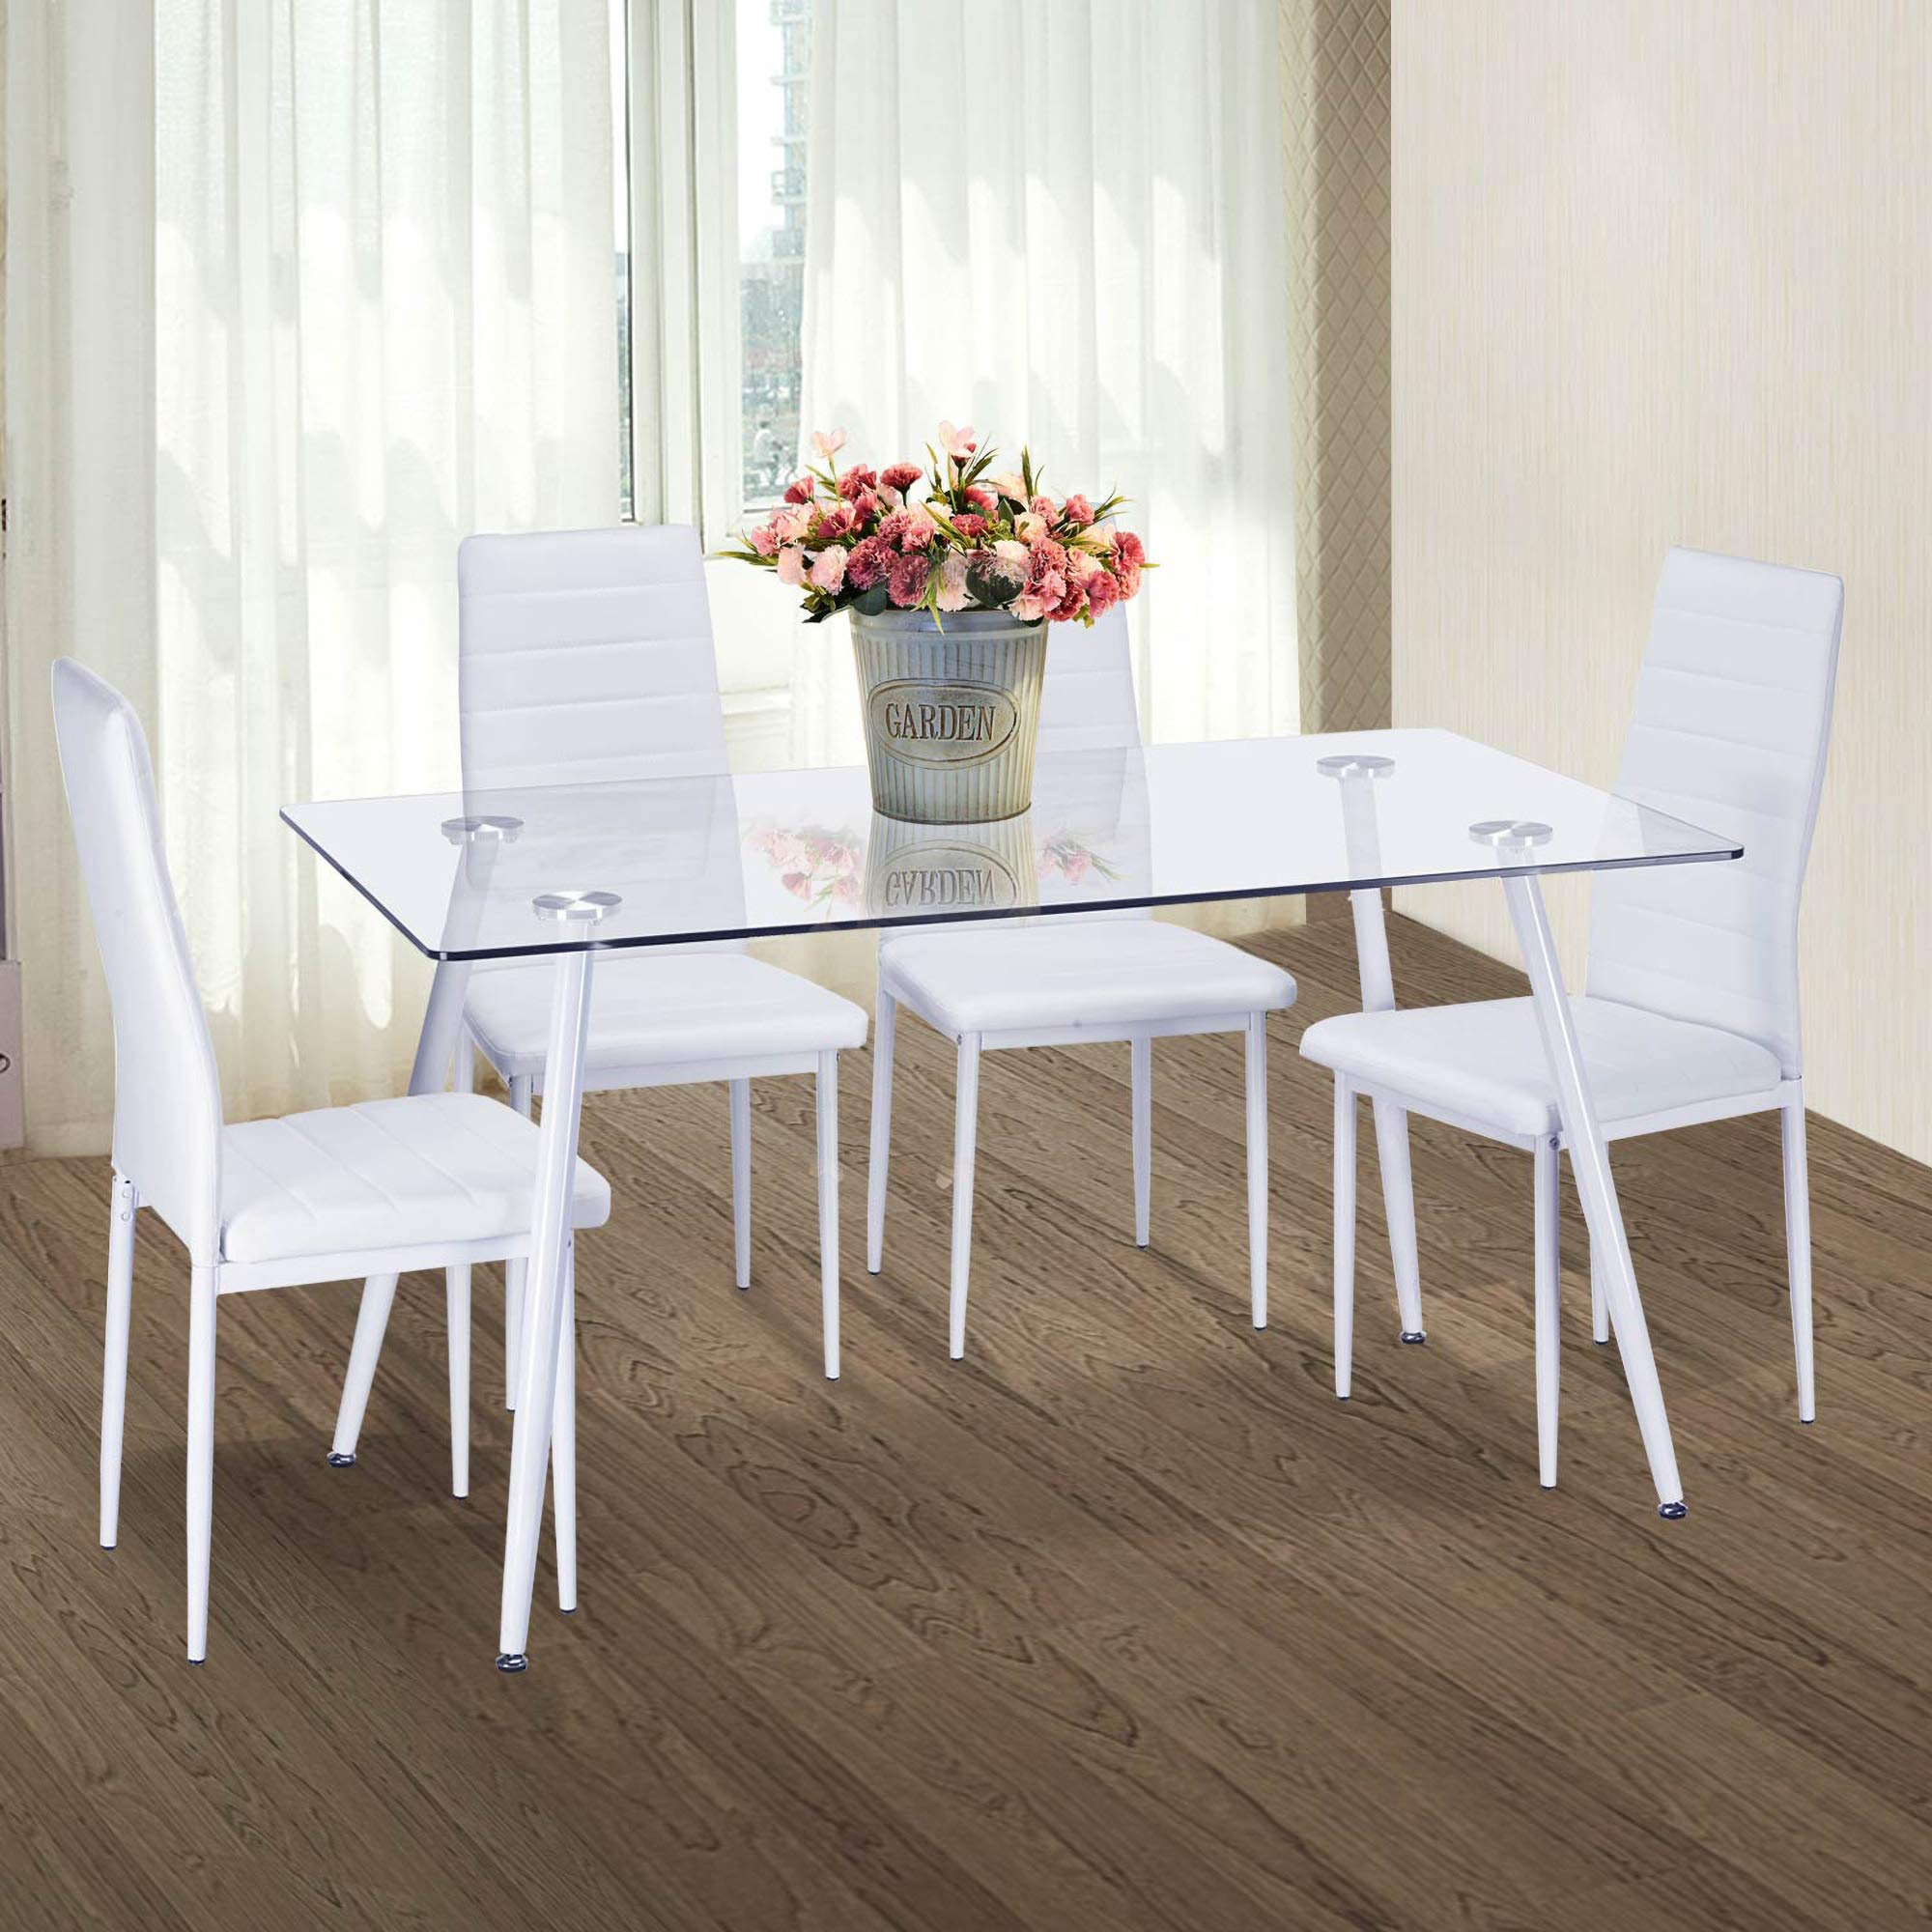 Merax Set of 4 Dining Room Chairs PU Leather Home Furniture Kitchen Side Chairs (White)